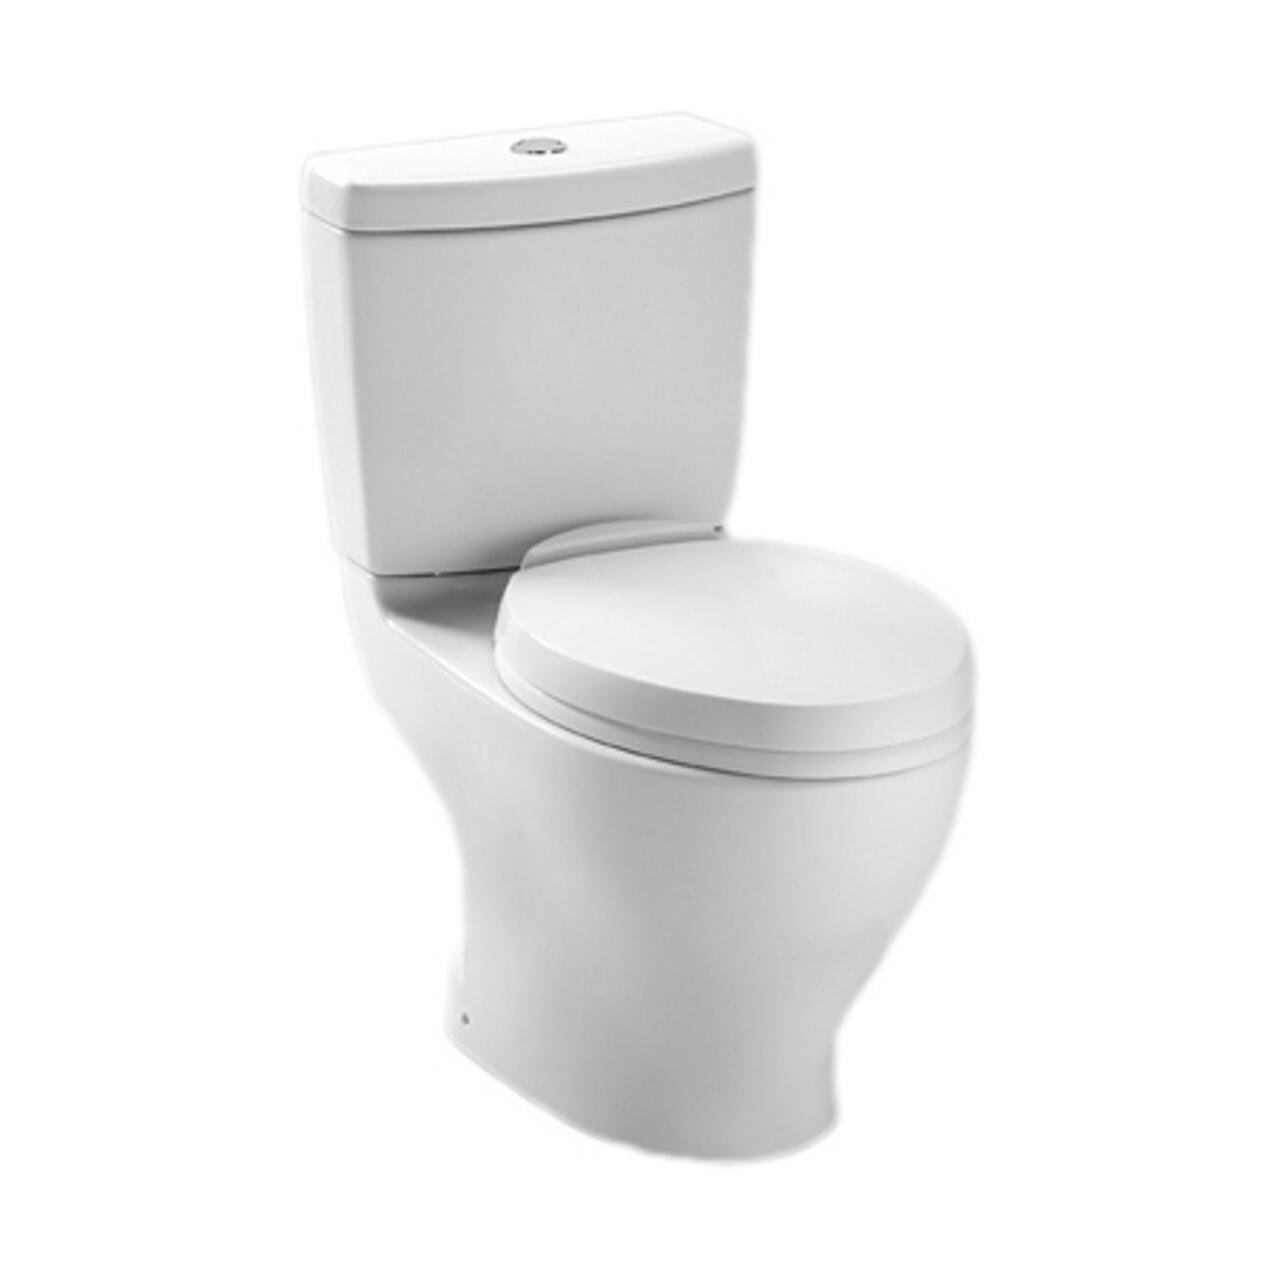 10 inch rough in toilet - Toto Cst412mf 10no 01 Aquia Dual Flush Toilet 1 6 Gpf And 0 9 Gpf With 10 Inch Rough In Cotton Two Piece Toilets Amazon Com